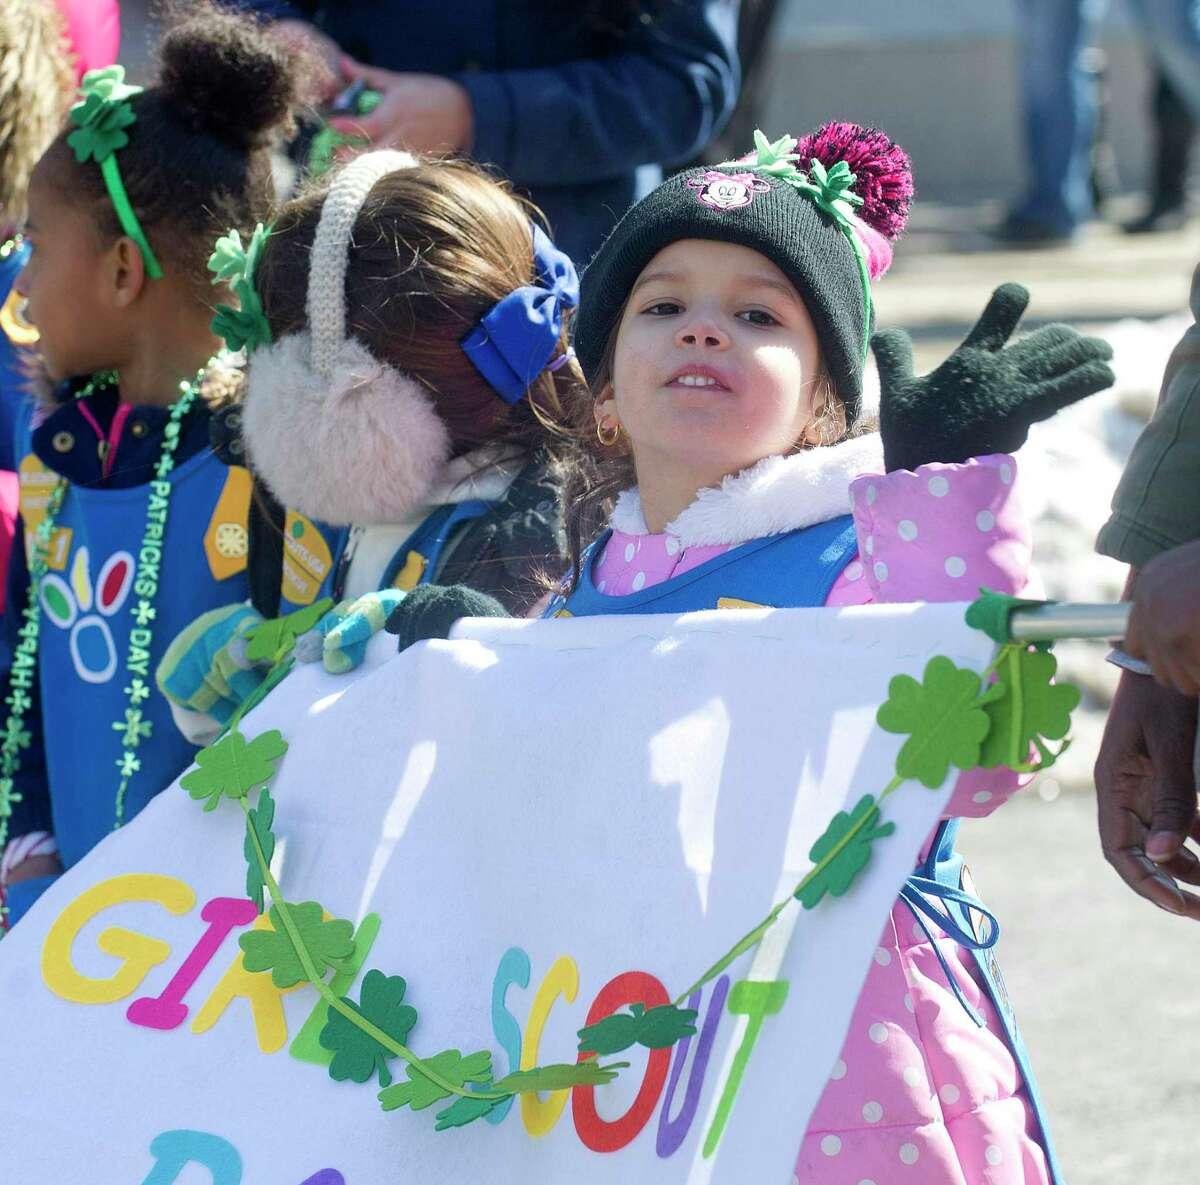 Daisy Girl Scout Day: Rosie's Story is on Jan. 11 at 10 a.m. at the Conncticut Audubon's Center at Fairfield, 2325 Burr Street, Fairfield. Daisy Girl Scouts will learn to reduce, reuse and recycle. The fee is $14 per scout and $2 per adult. Register online. For more information, visit ctaudubon.org.